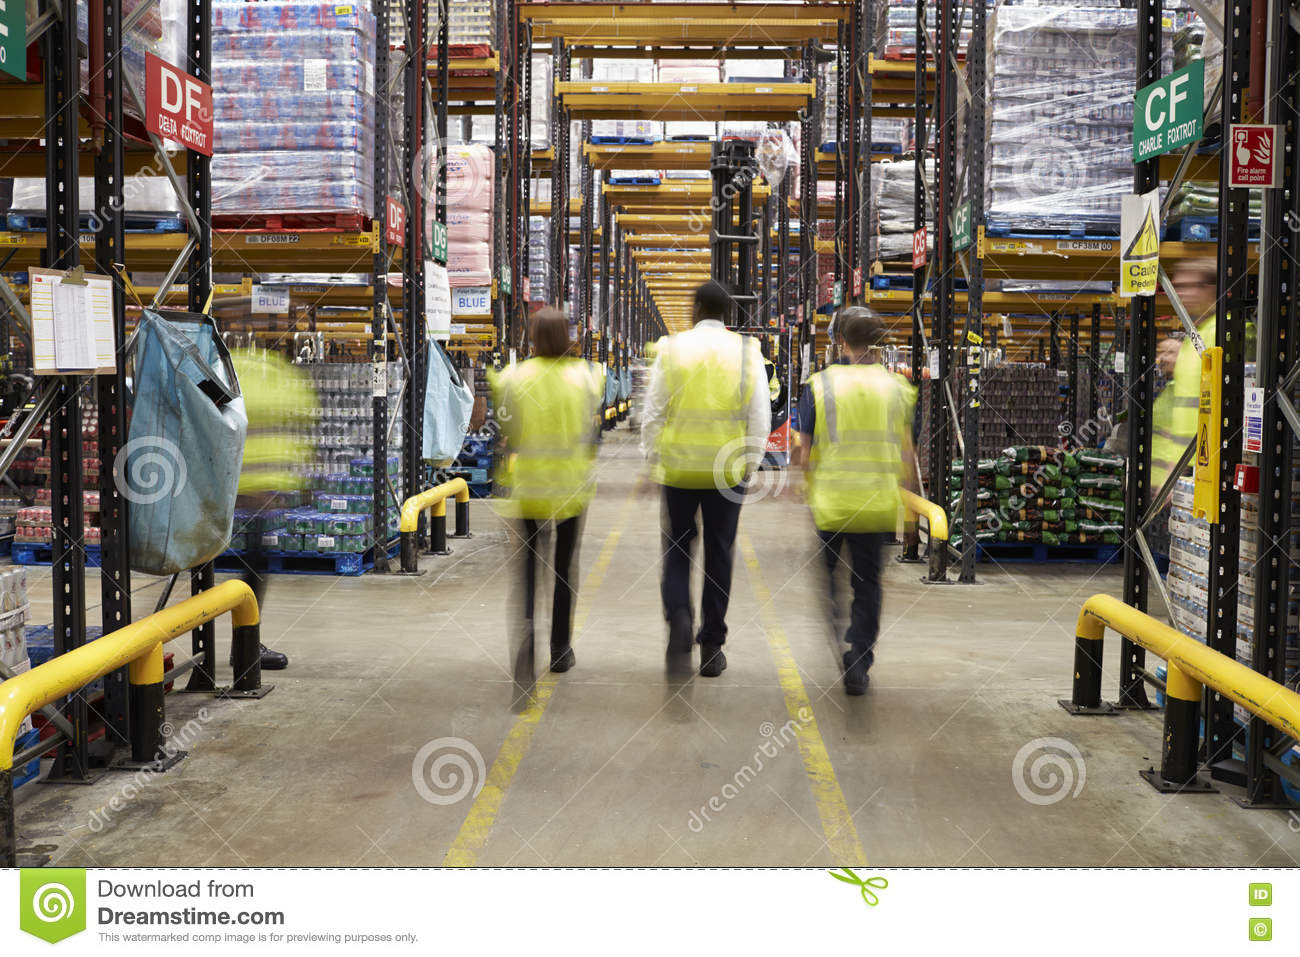 ESSEX, ENGLAND- MAR 13 2016: Staff in reflective vests walking away from camera in a supermarket distribution warehouse